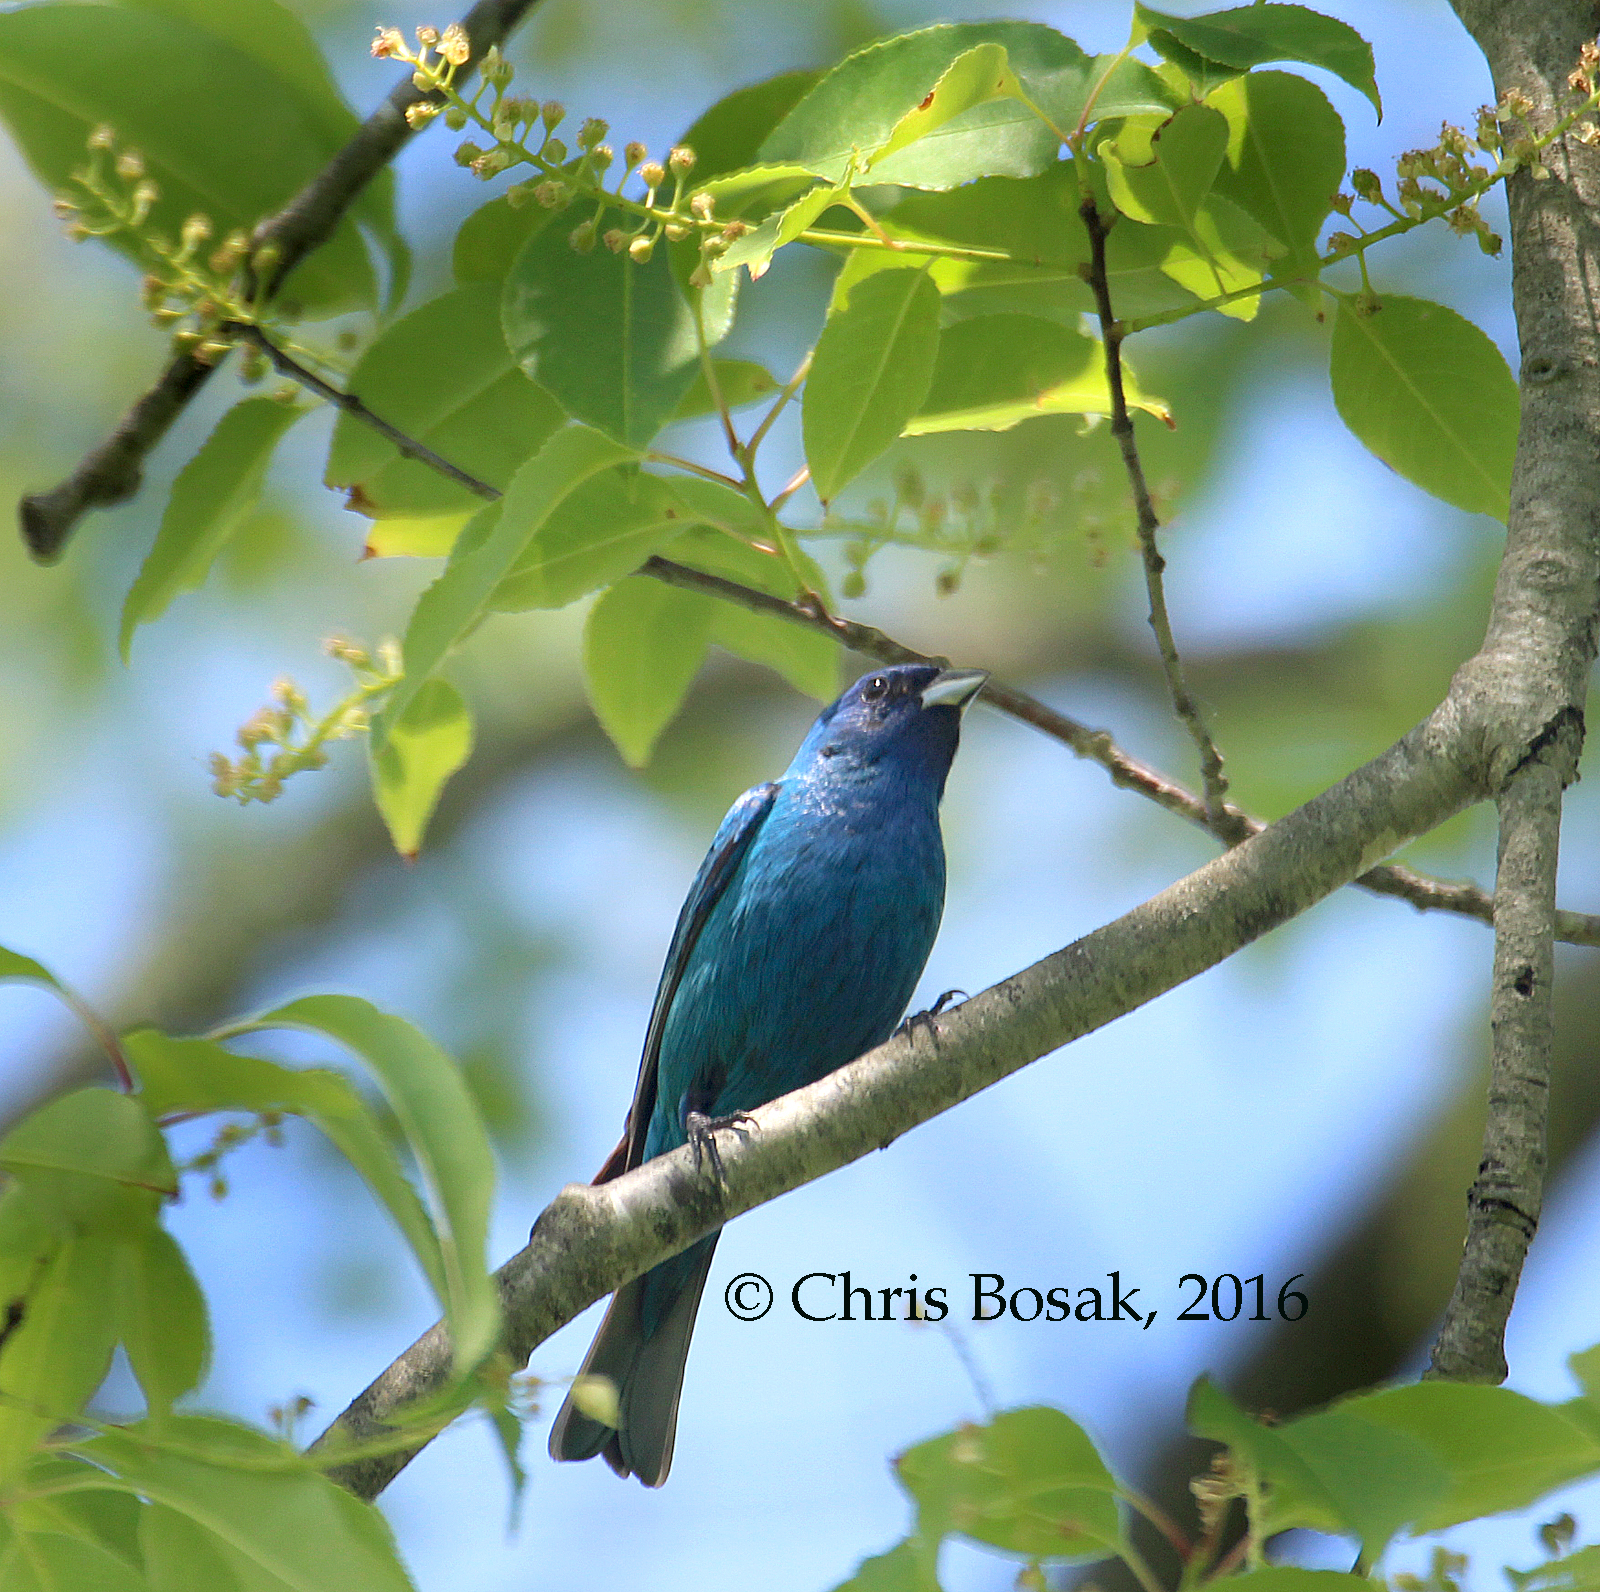 Photo by Chris Bosak An Indigo Bunting perches in a tree in Ridgefield, Conn., spring 2016.